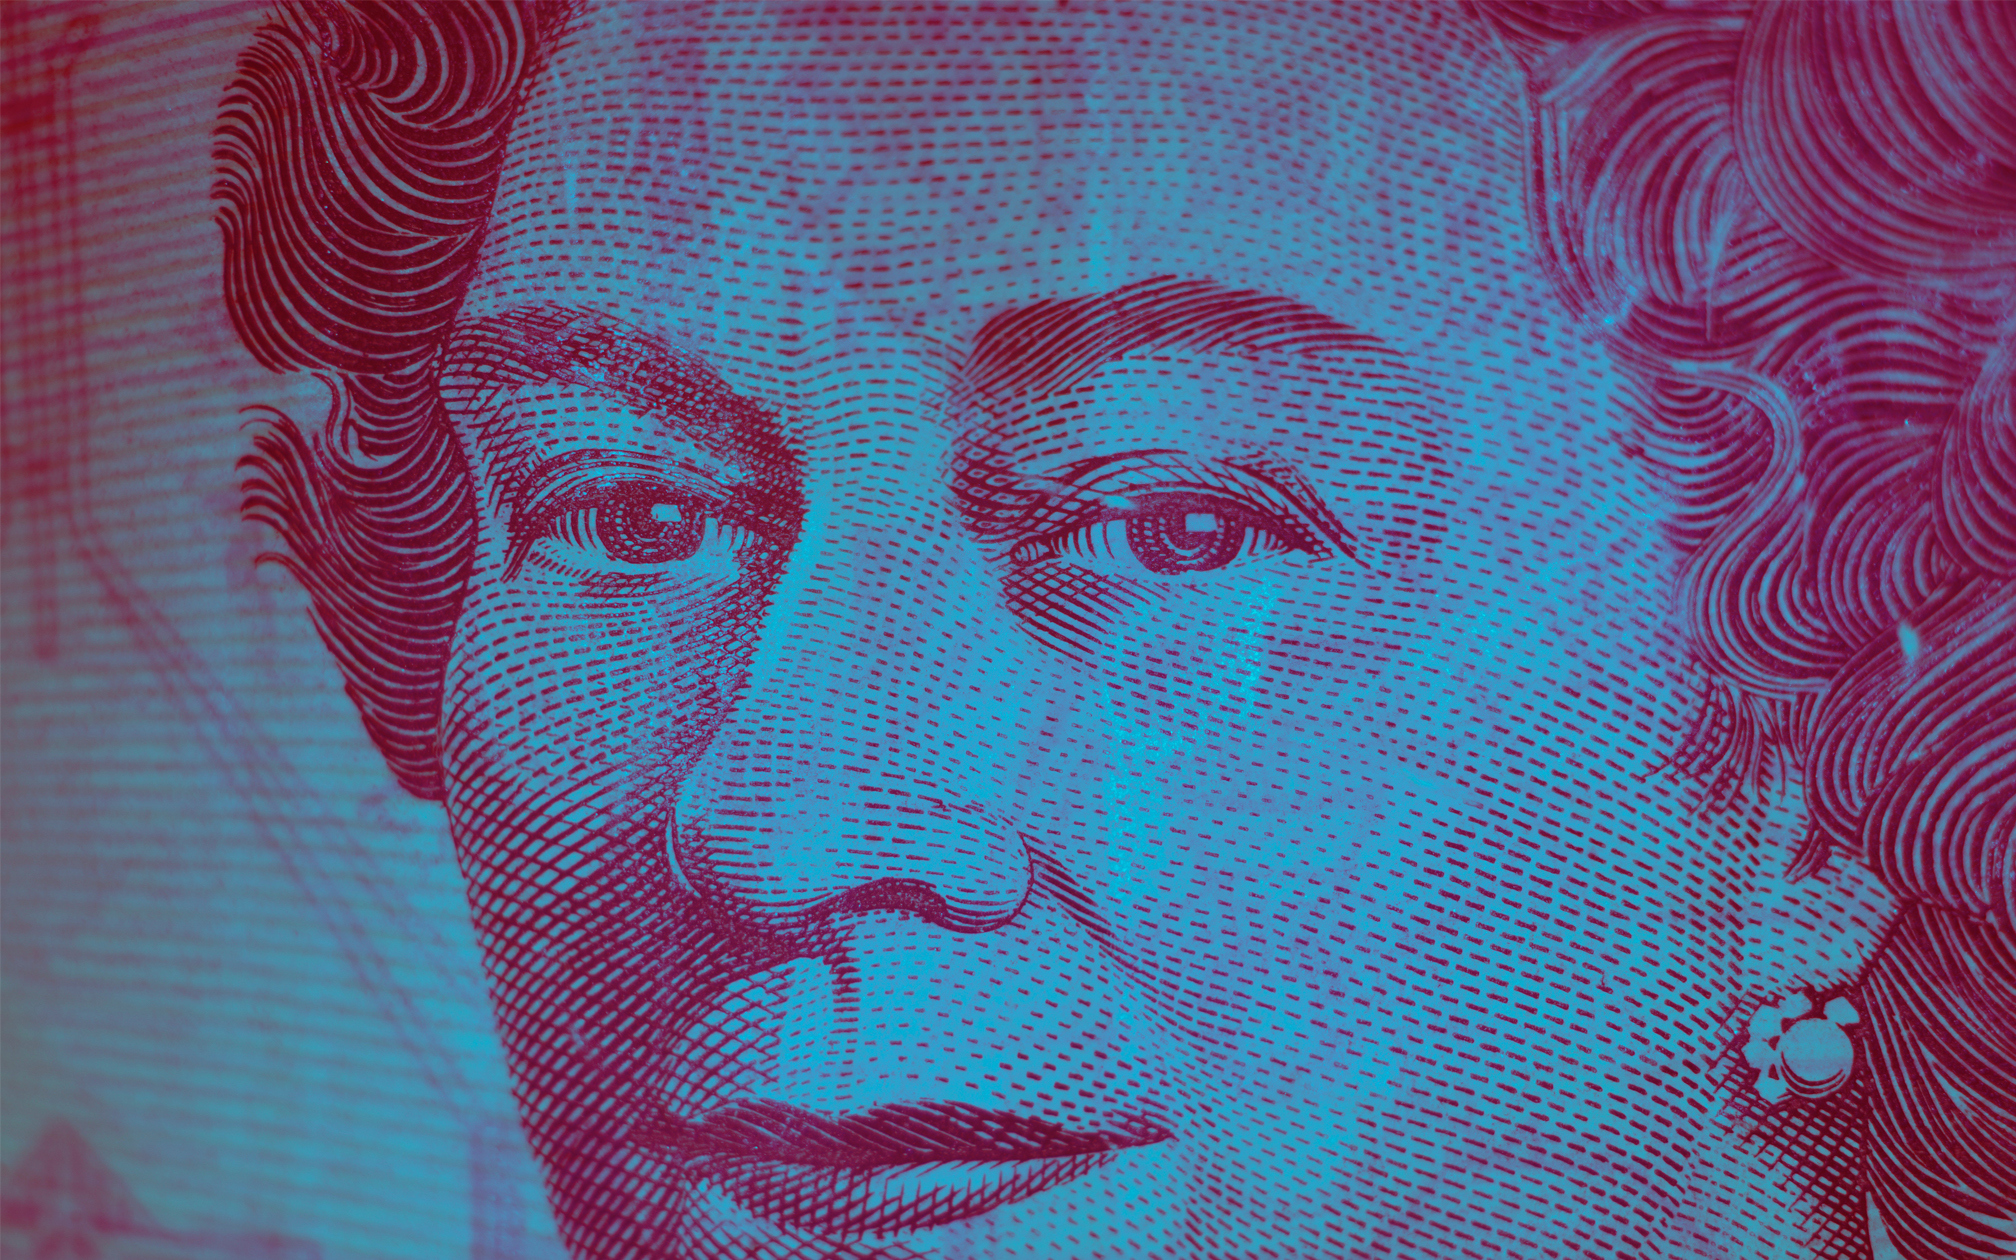 Bank Note 2016x1260